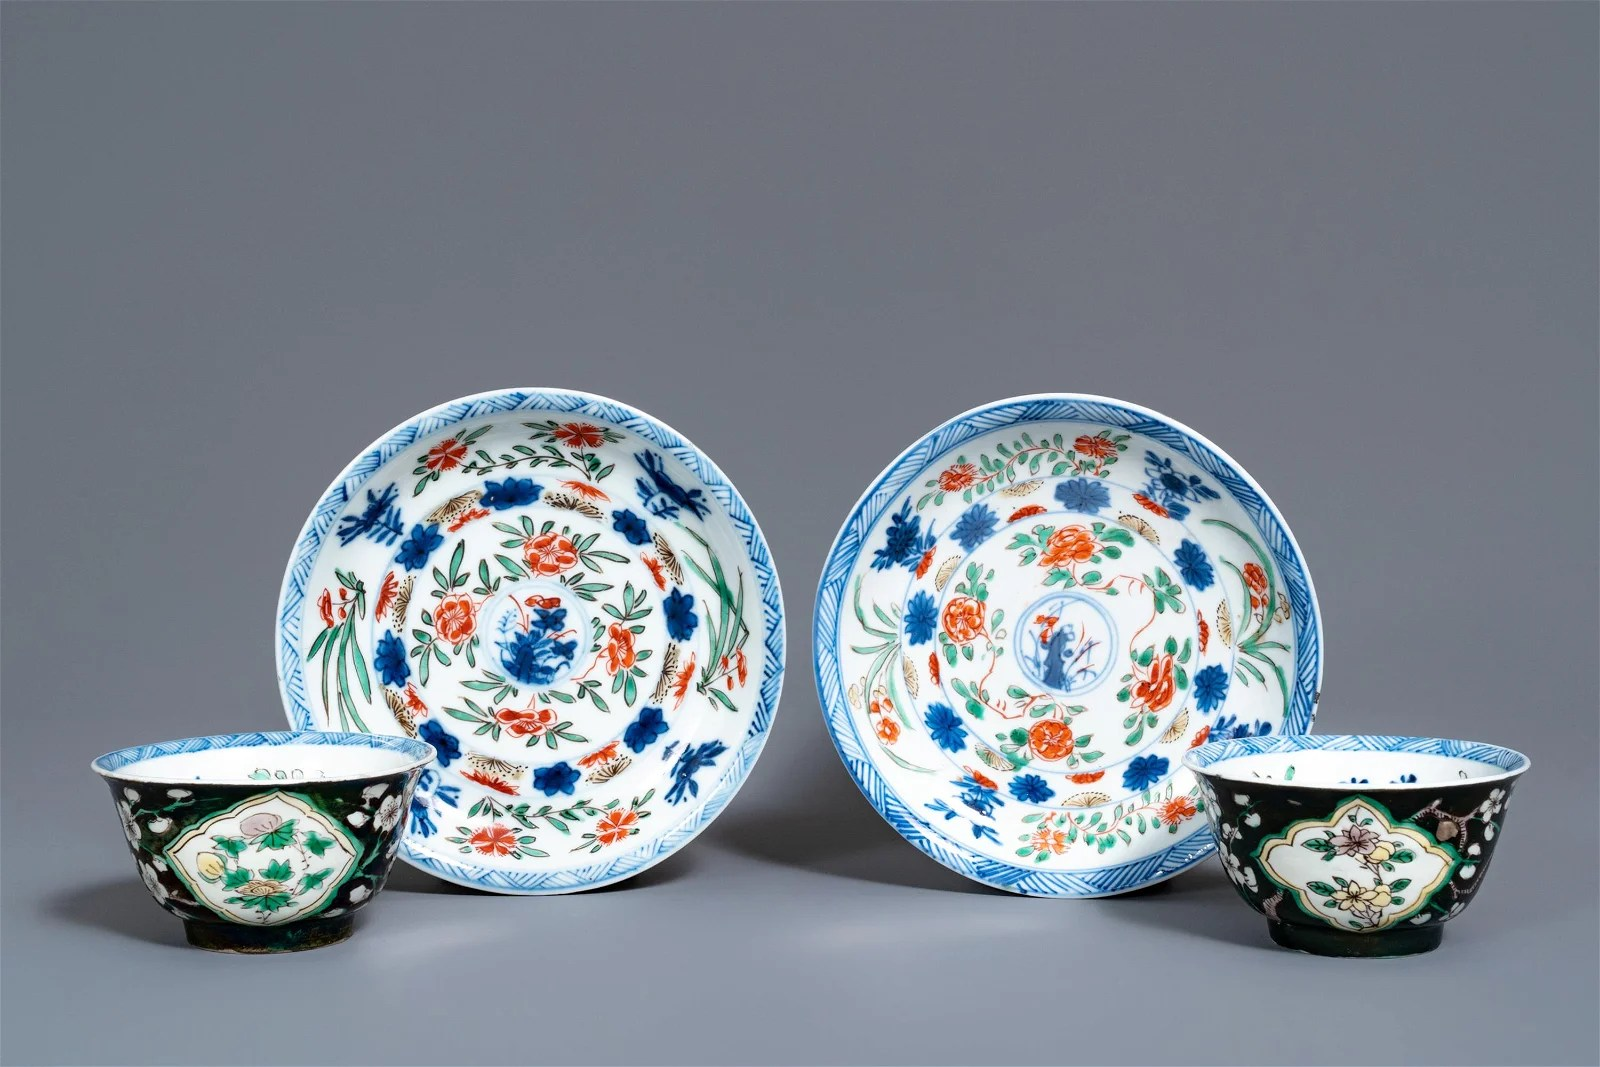 A pair of rare Chinese famille noire cups and saucers,